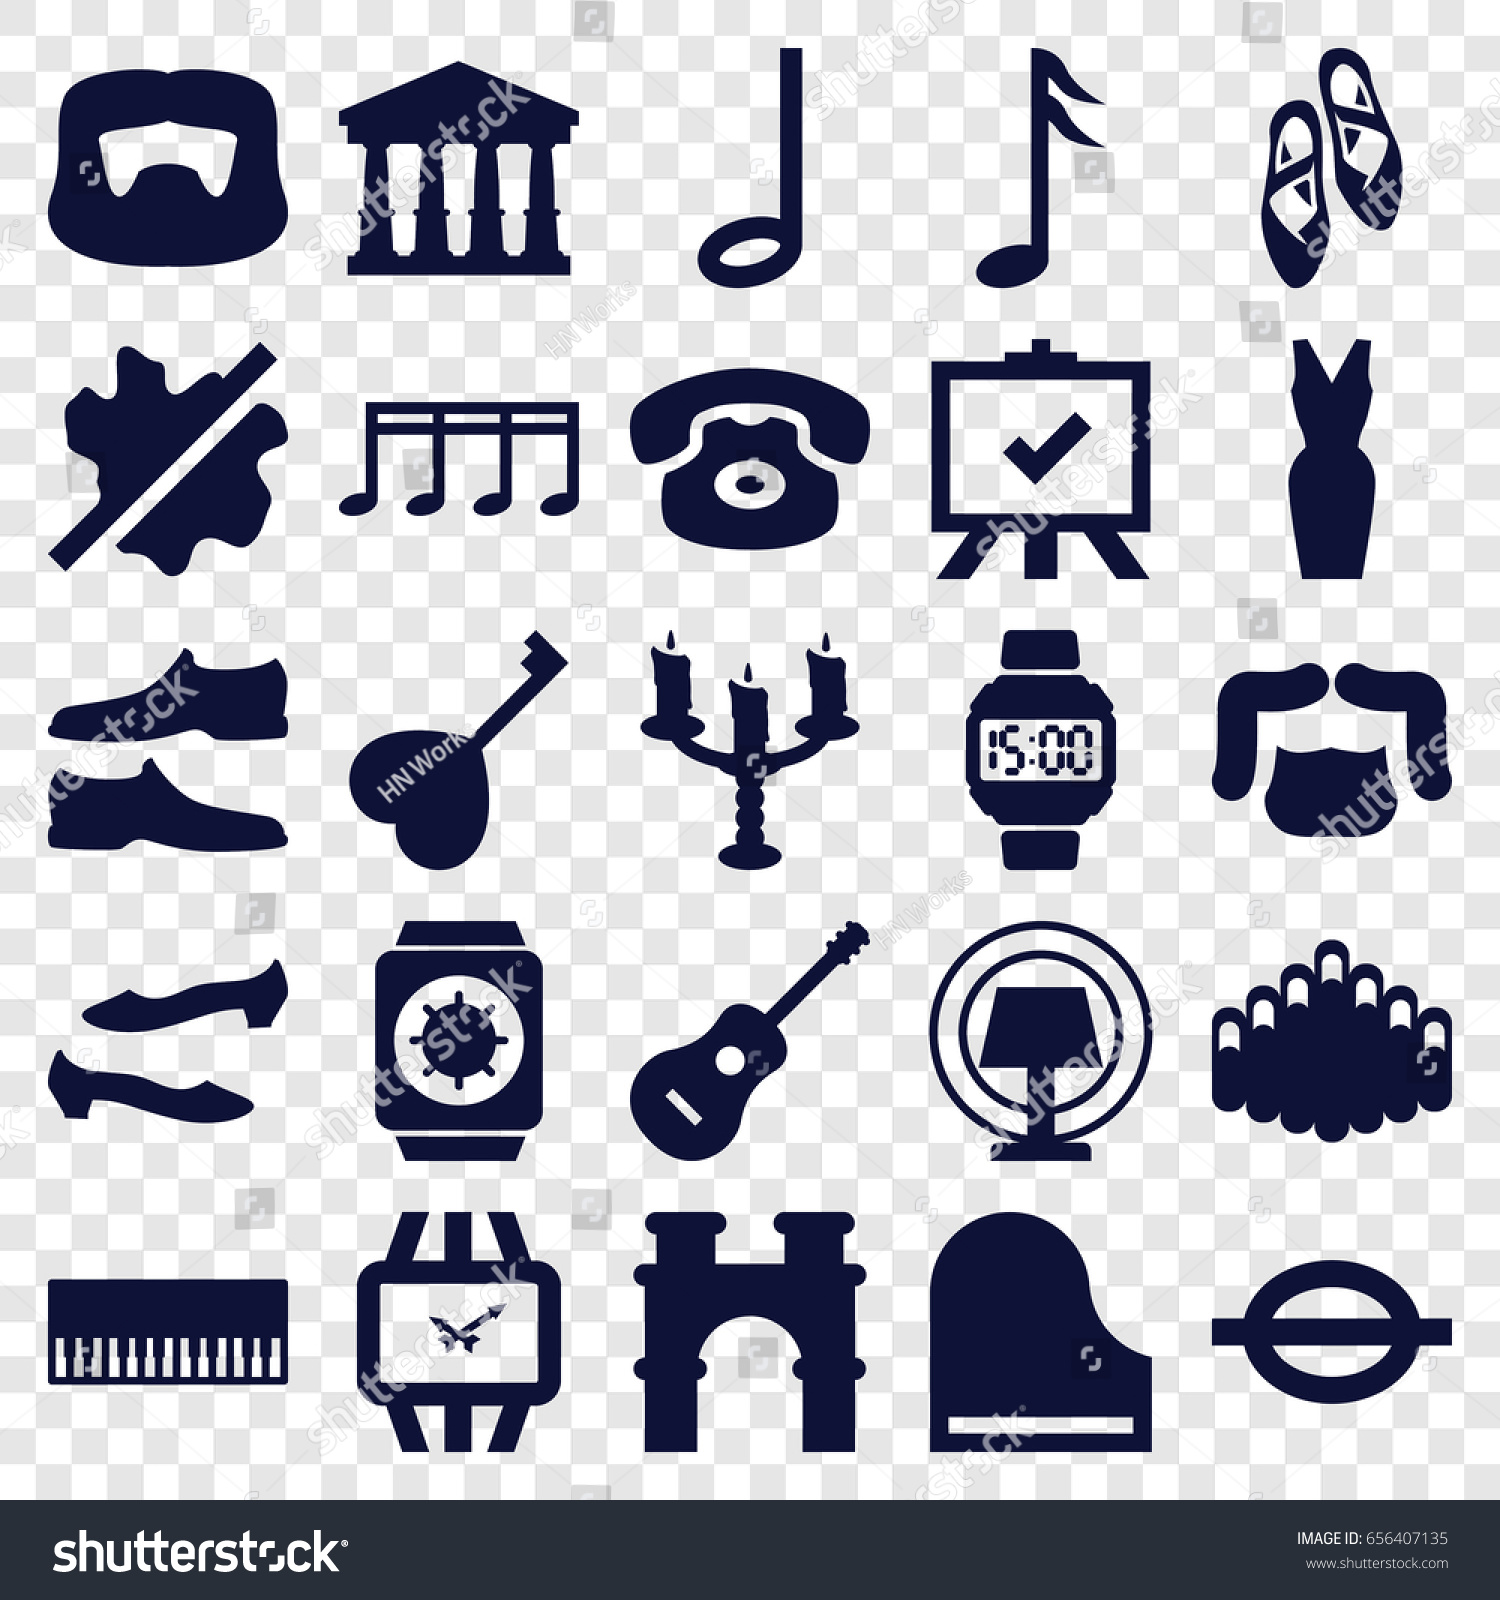 Classic icons set set 25 classic stock vector 656407135 shutterstock classic icons set set of 25 classic filled icons such as court arch biocorpaavc